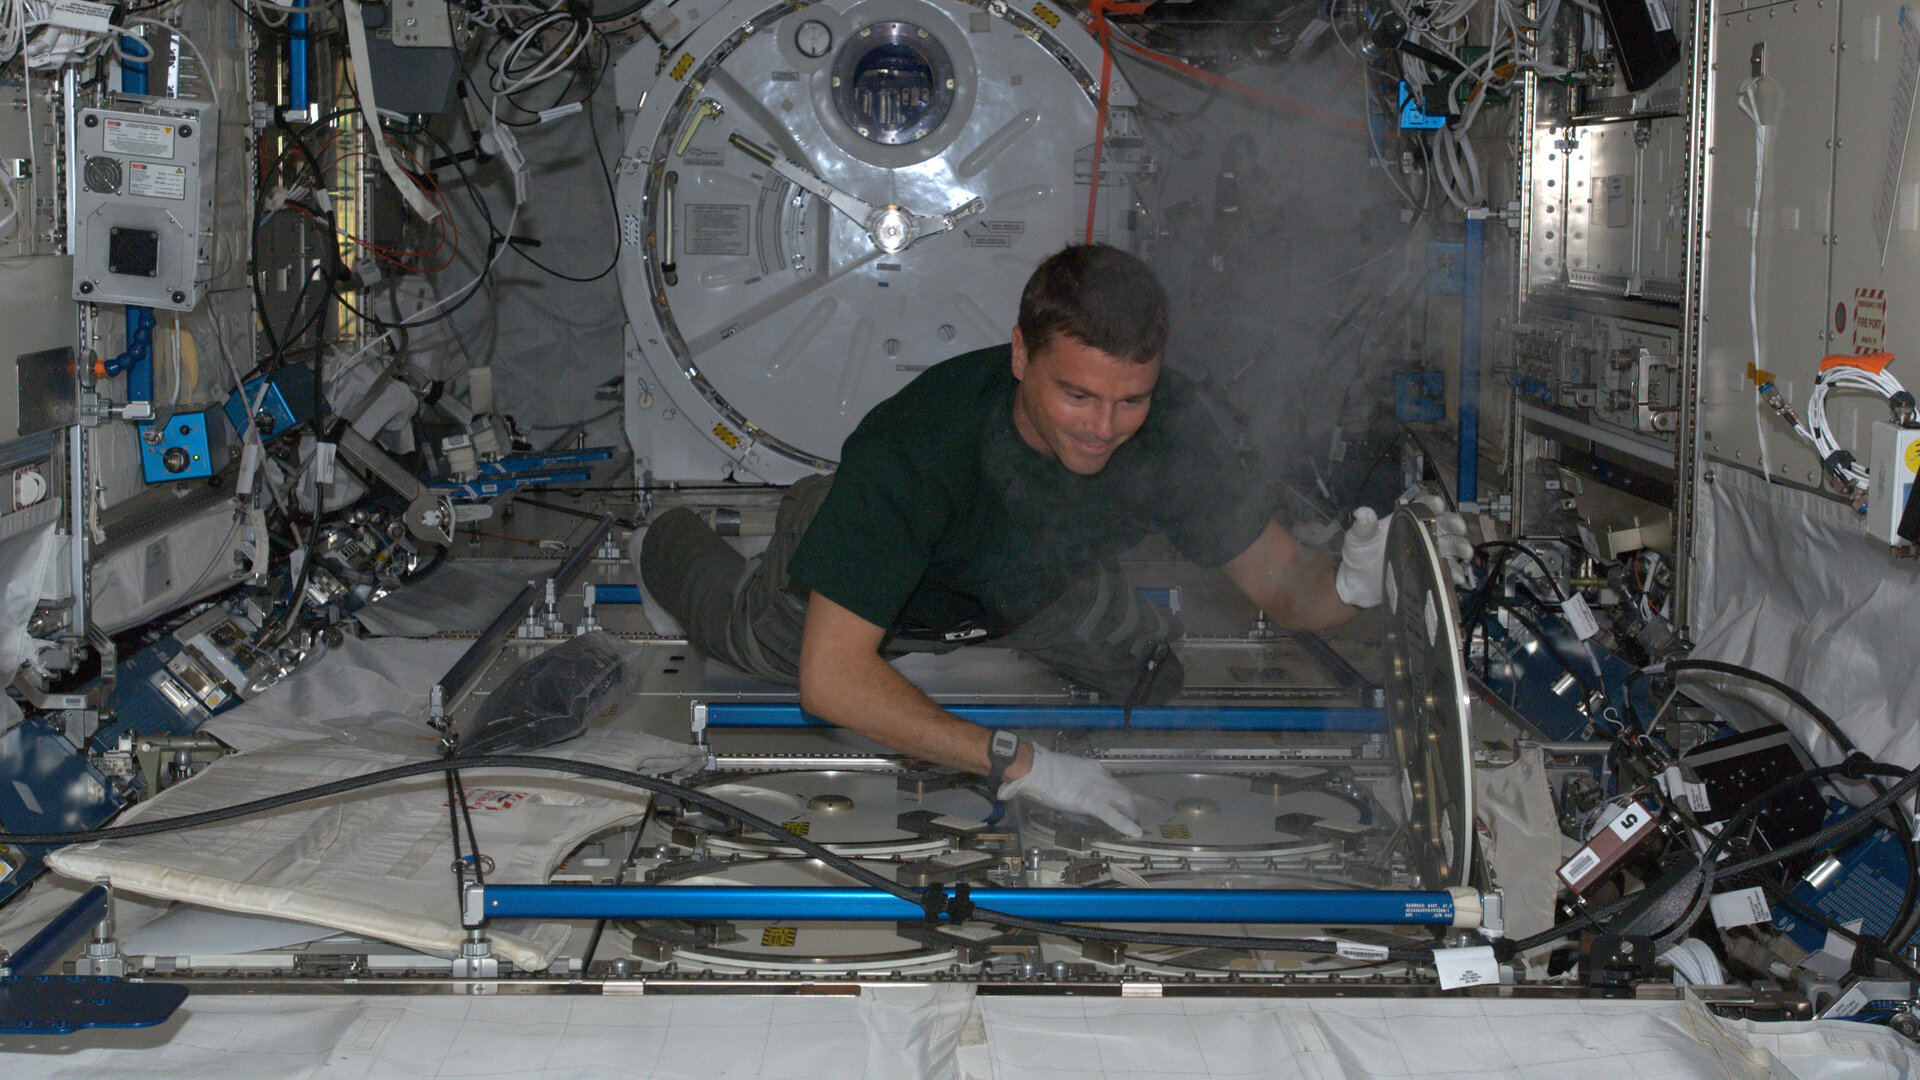 Freezing samples on Station